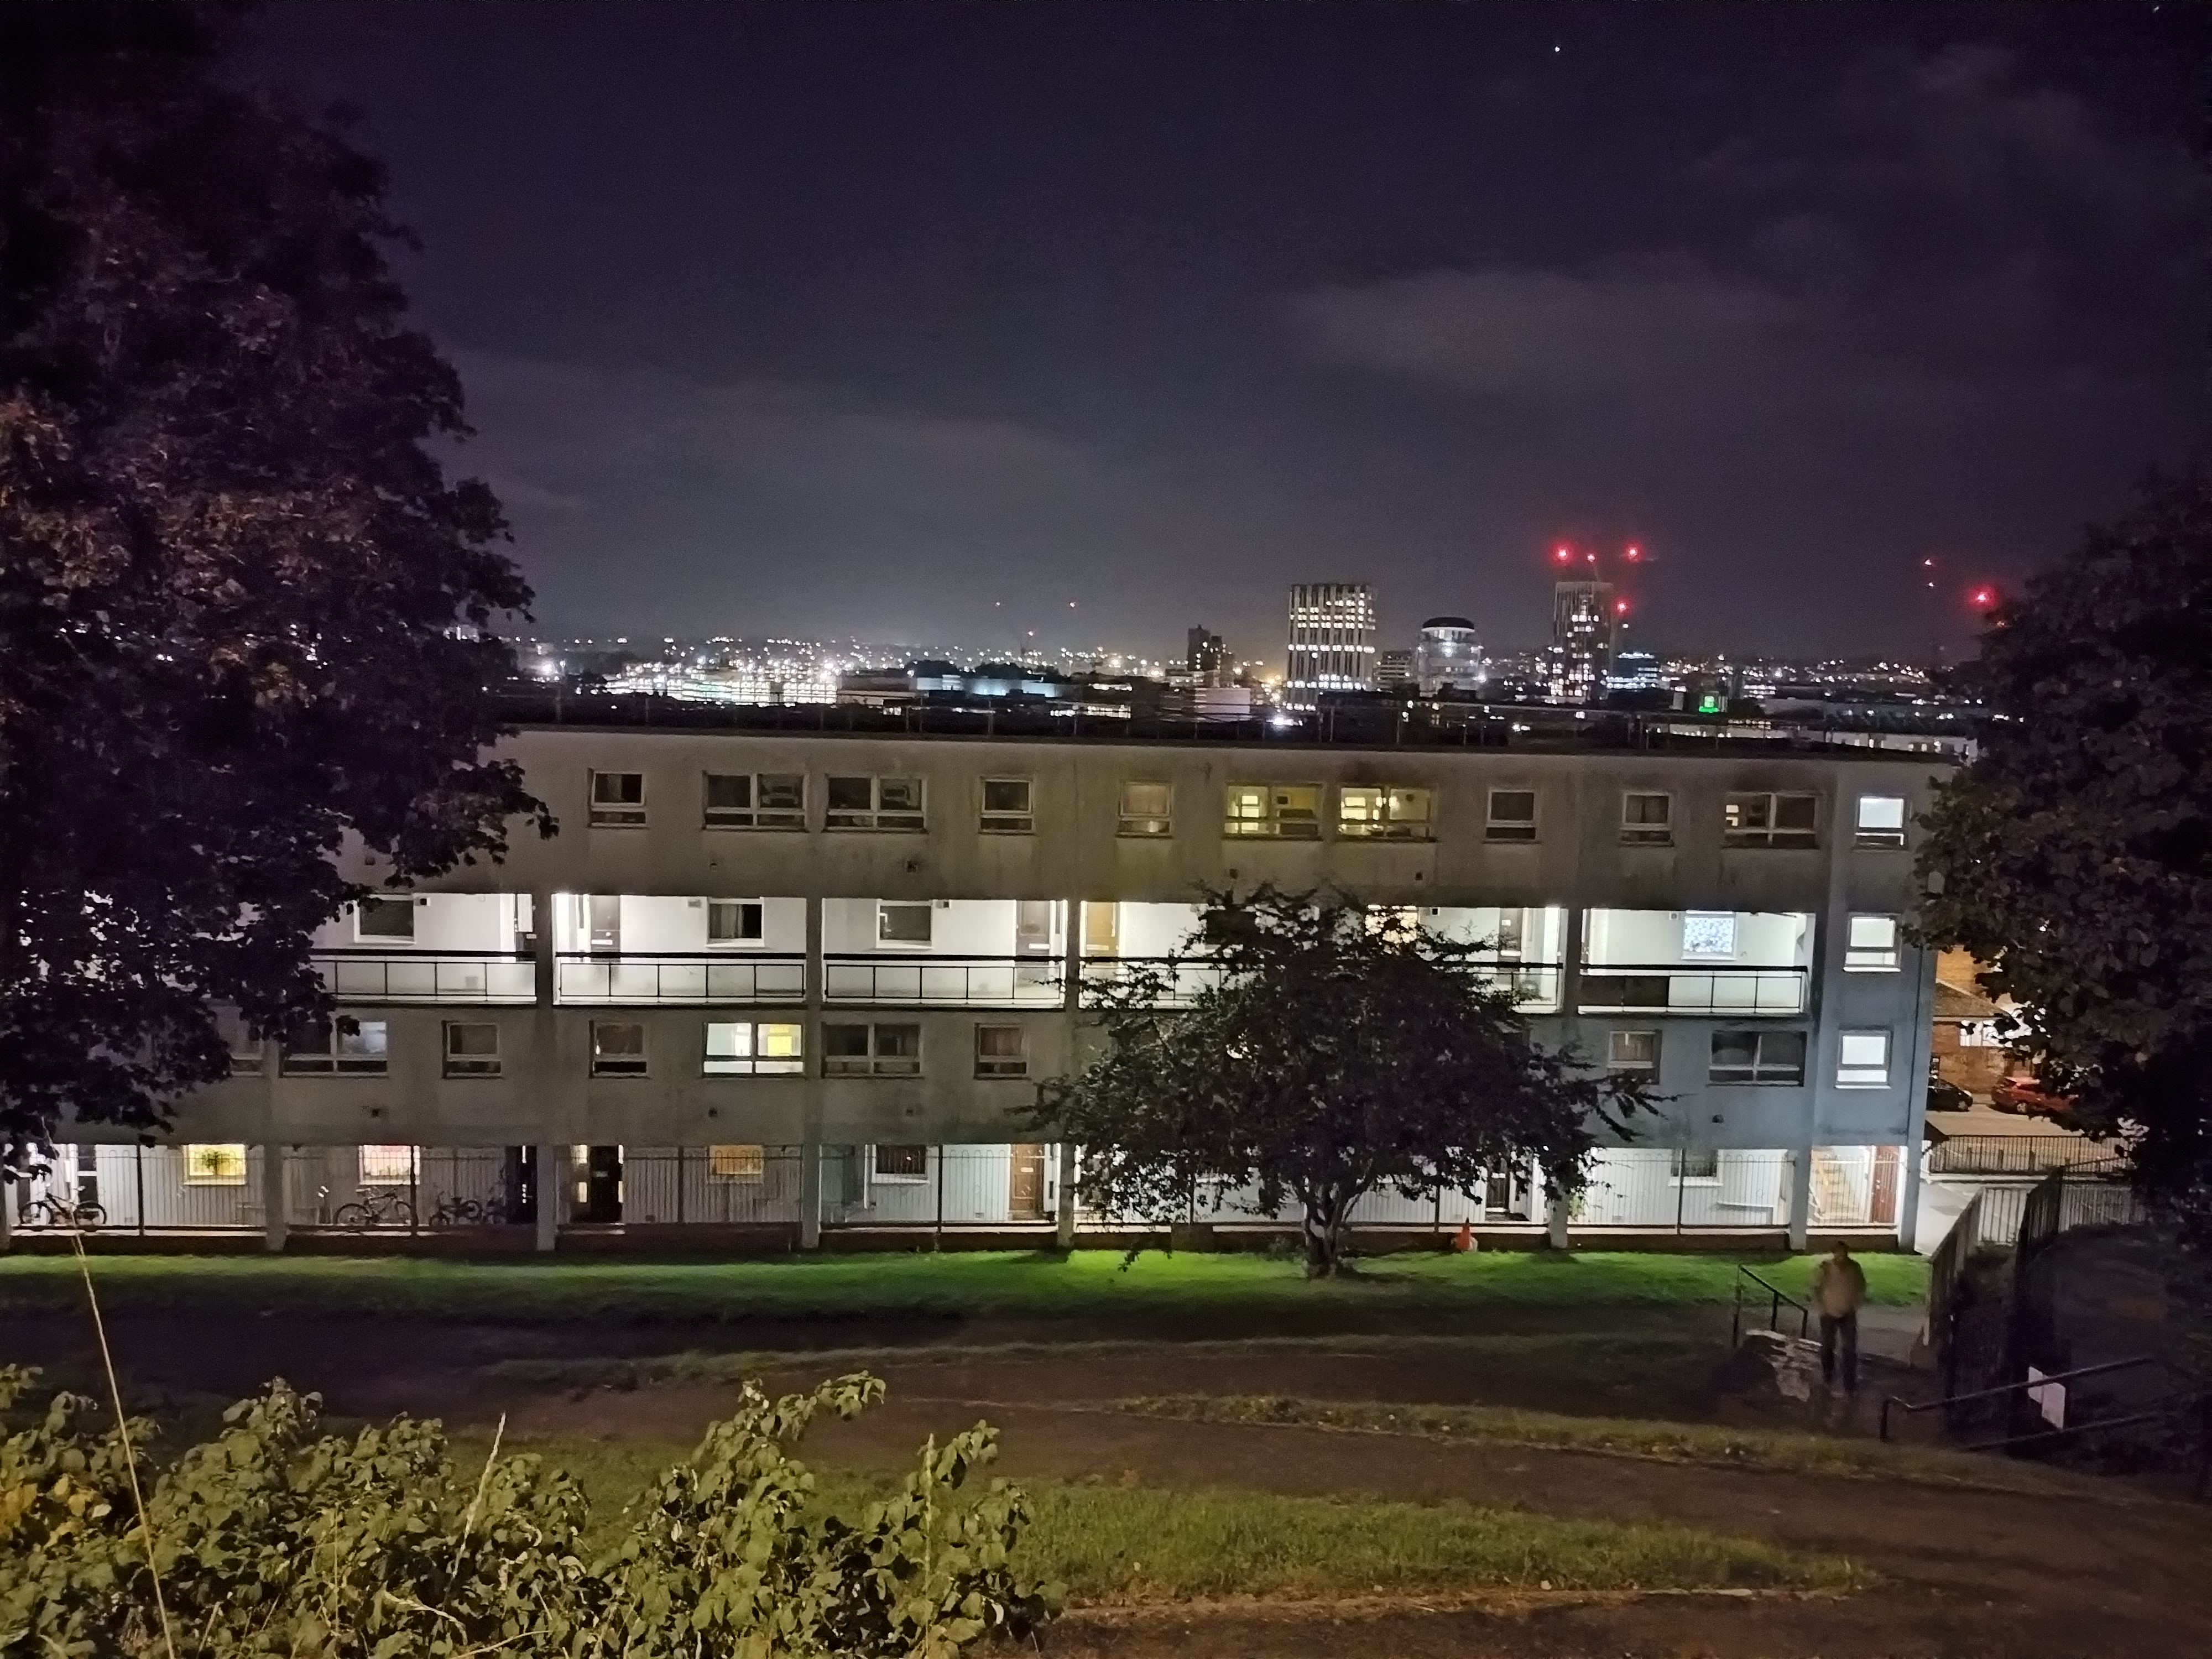 A photo of a block of flats at night